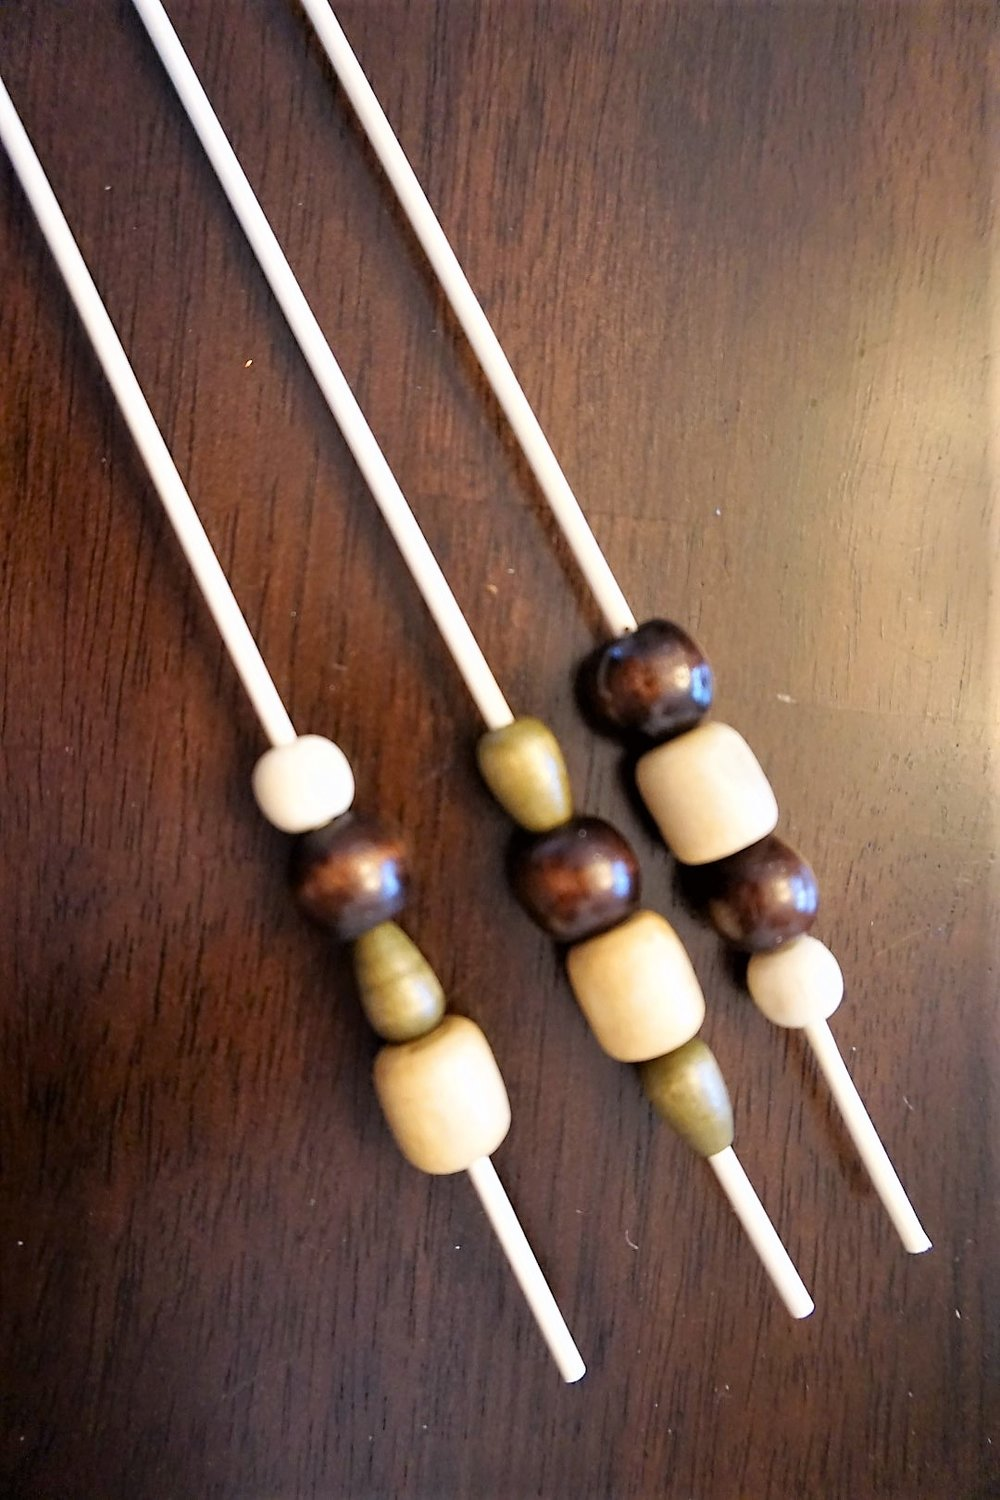 Add wooden beads to skewers to start your own boho arrow decorations.